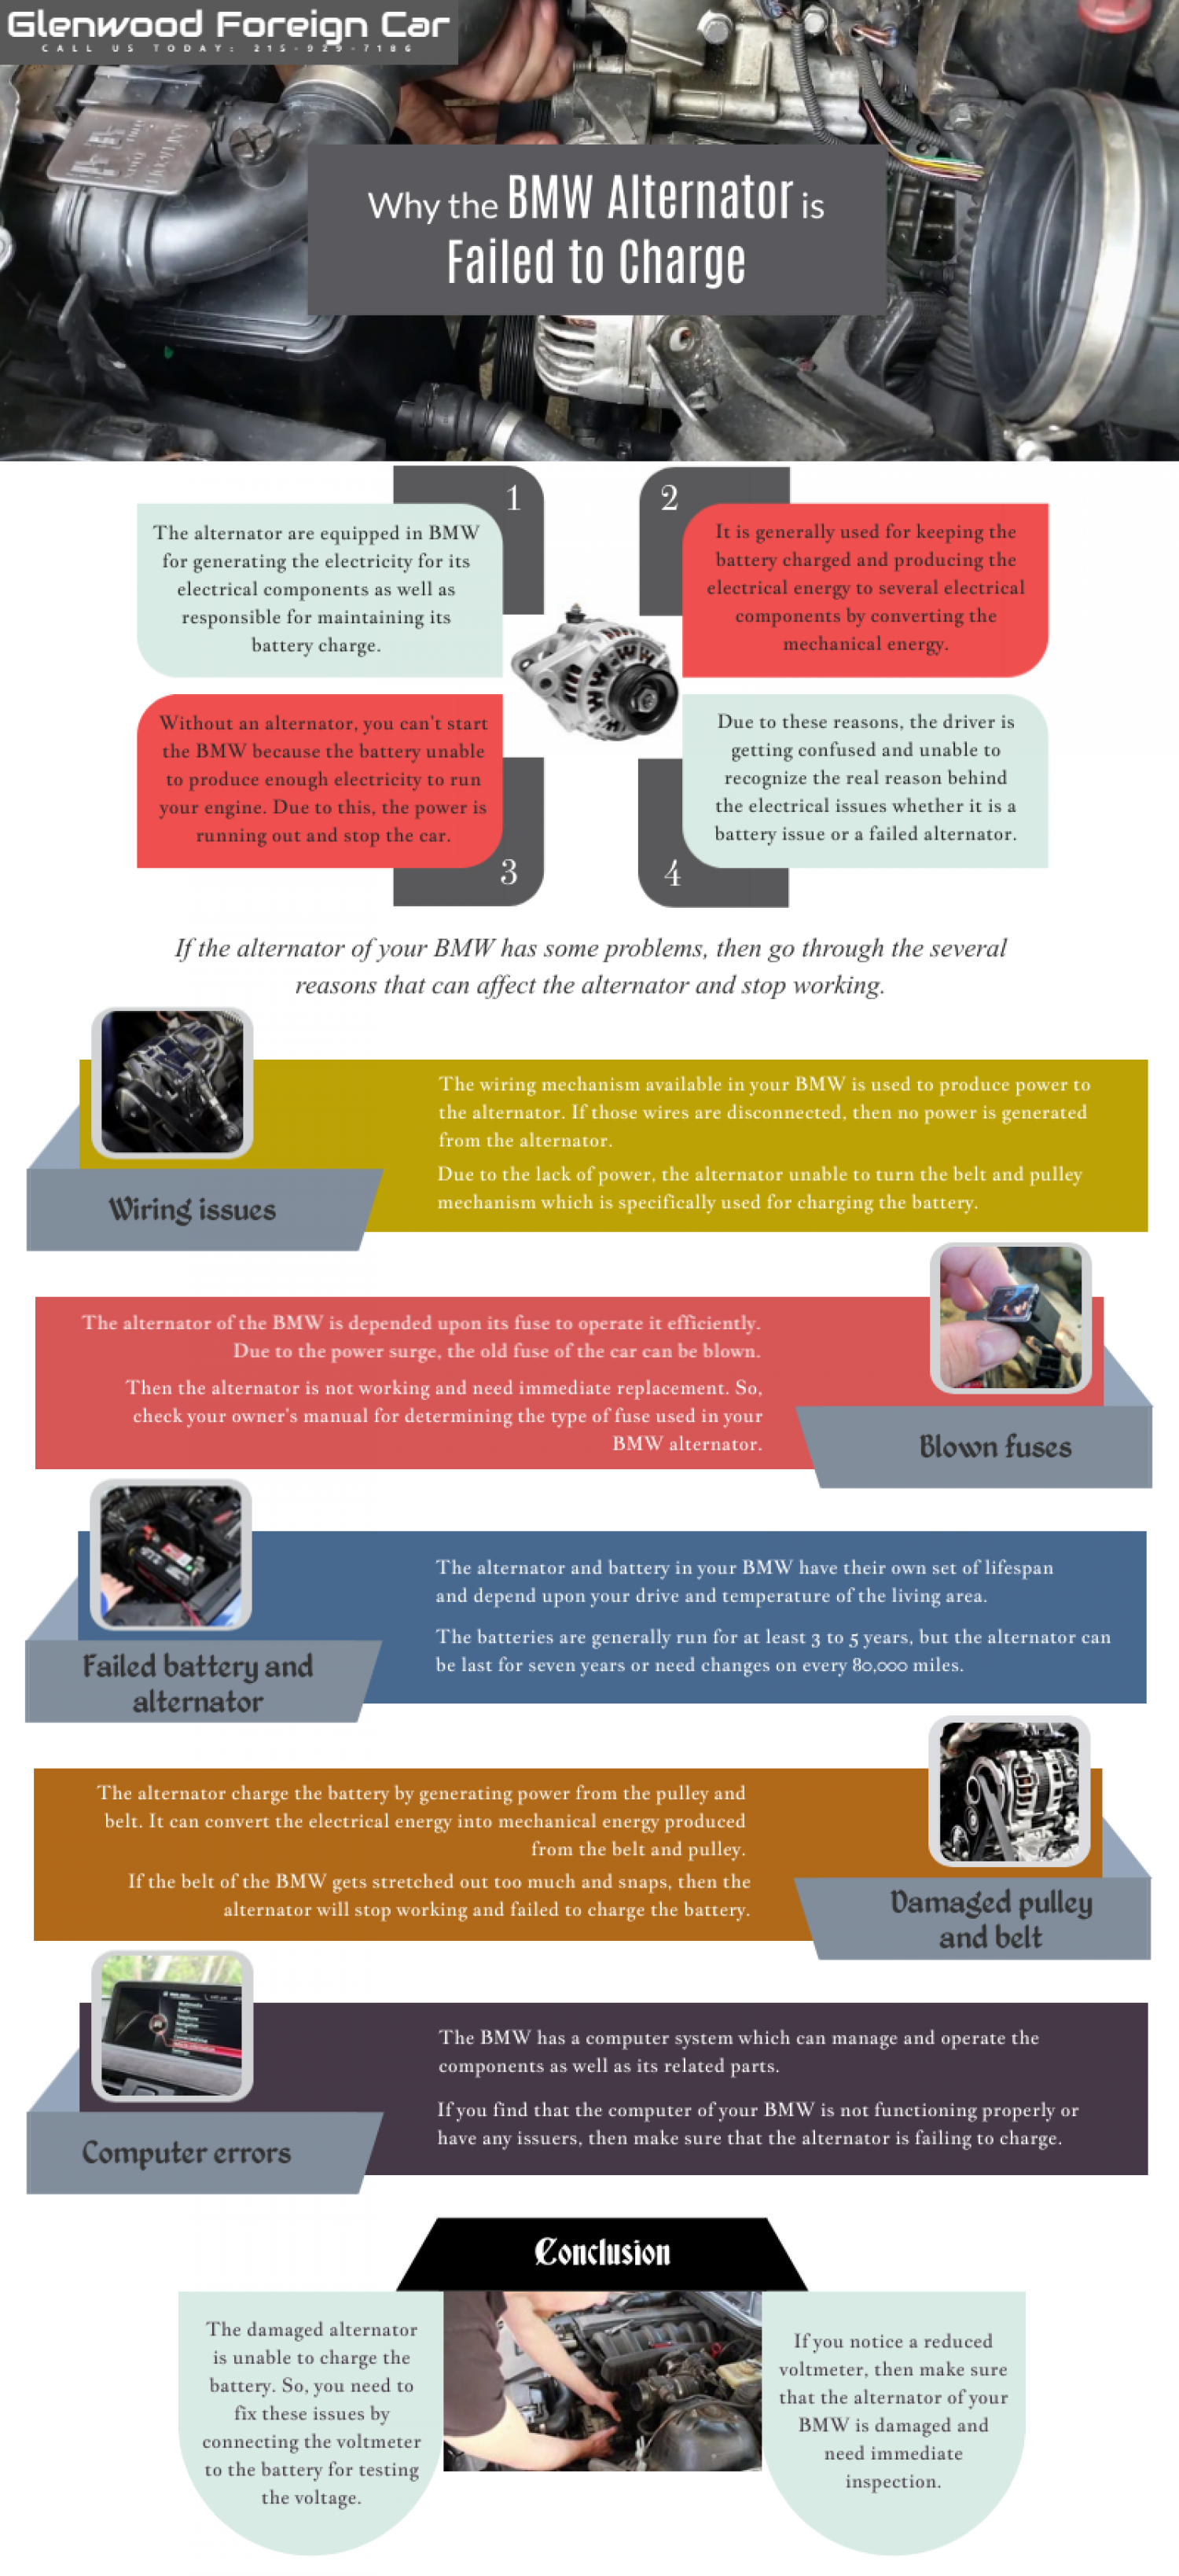 Why the BMW Alternator is Failed to Charge? Infographic